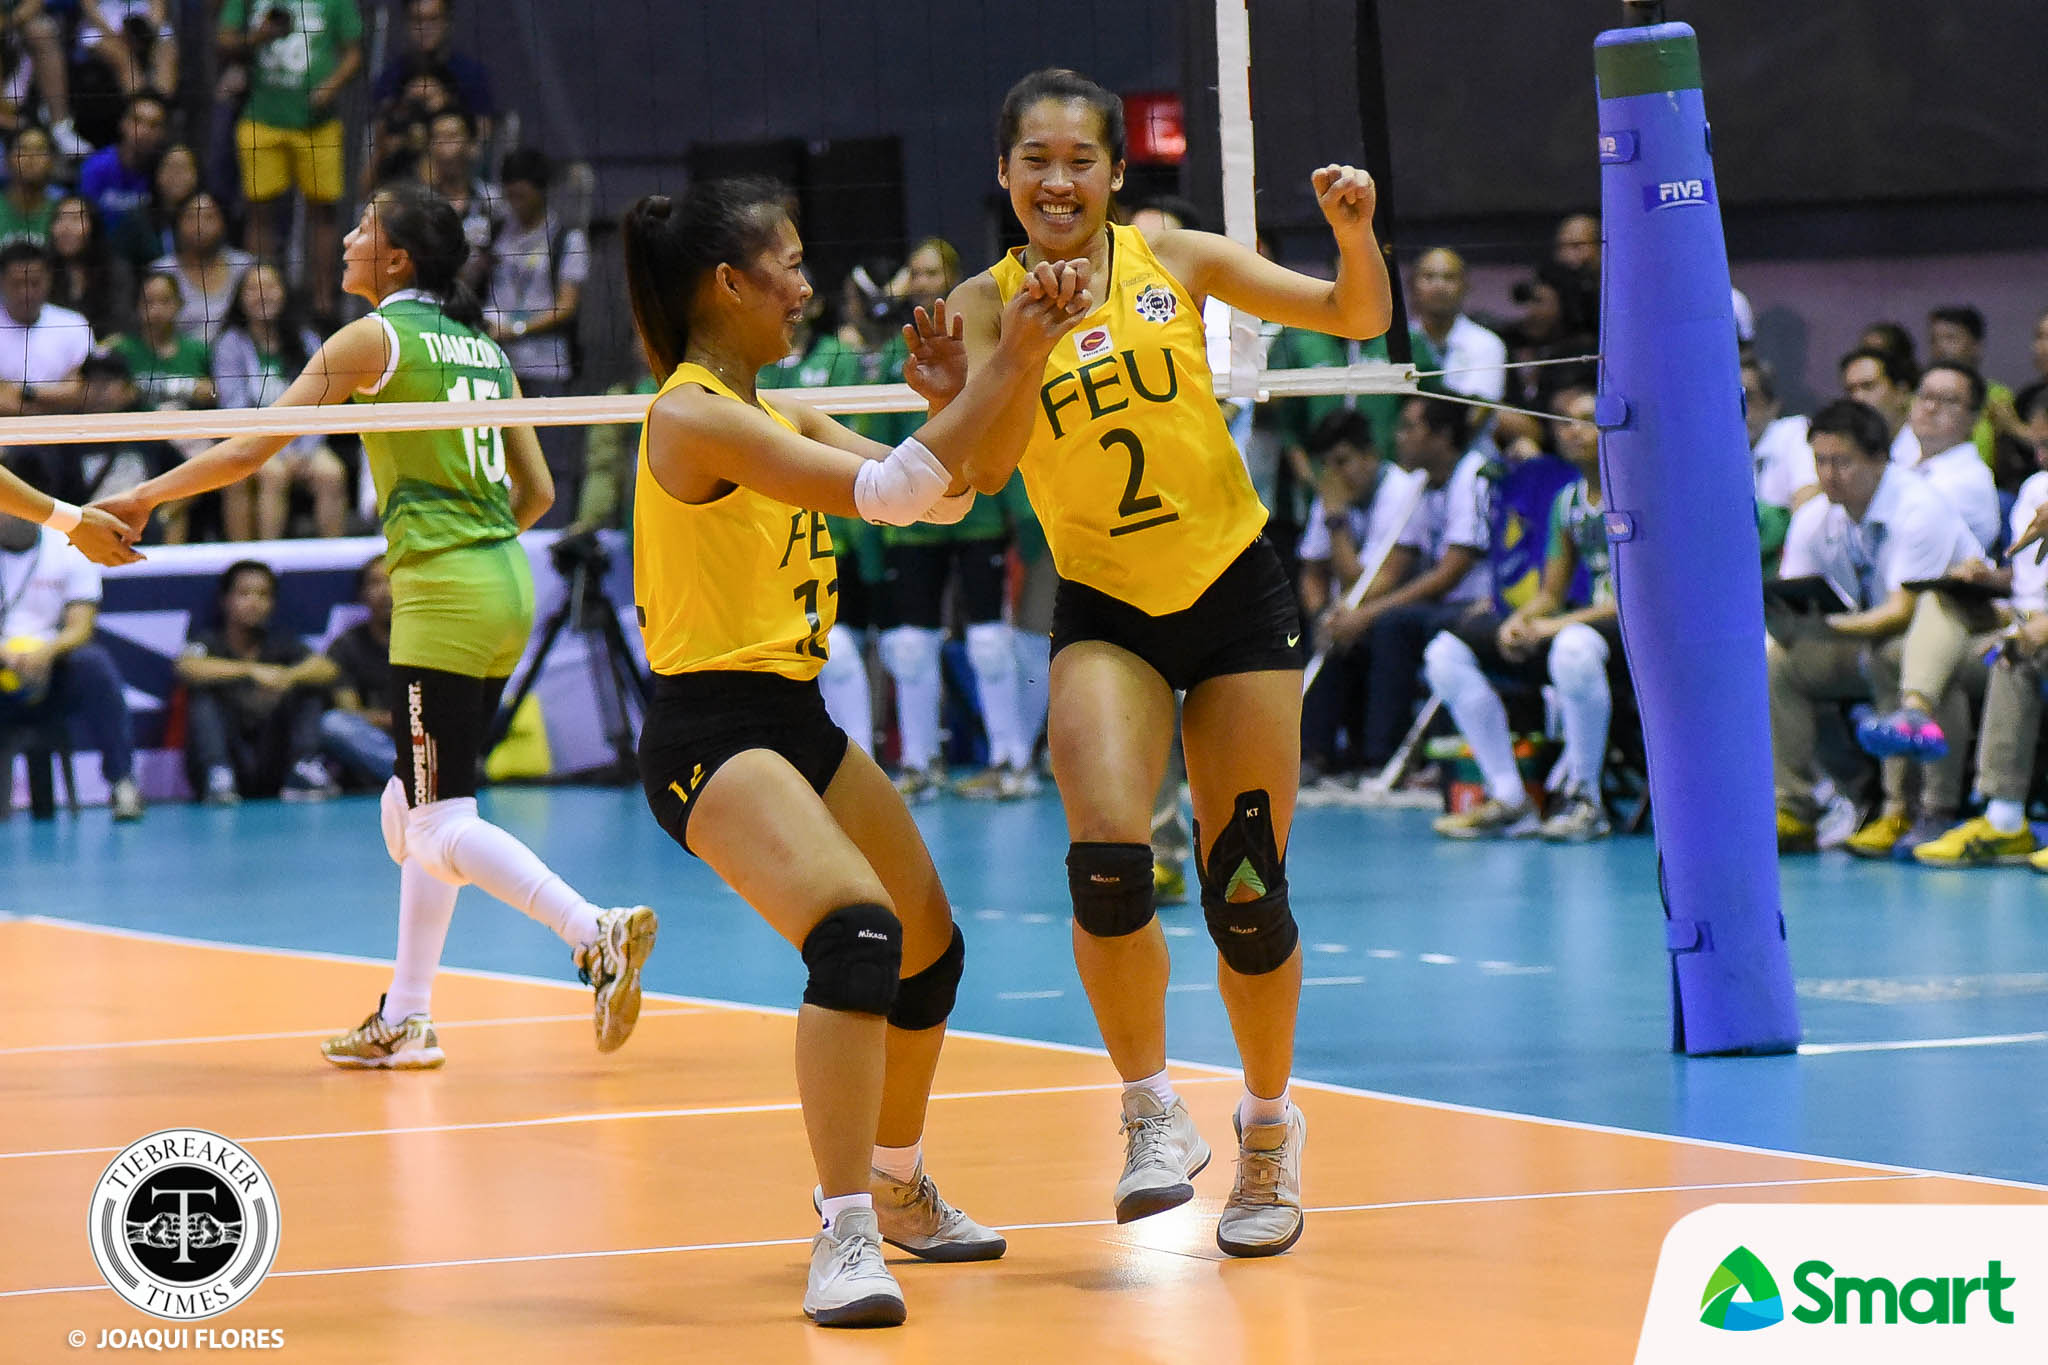 Philippine Sports News - Tiebreaker Times Bernadeth Pons finally gets recognition FEU News Volleyball  UAAP Season 80 Women's Volleyball UAAP Season 80 FEU Women's Volleyball Bernadeth Pons